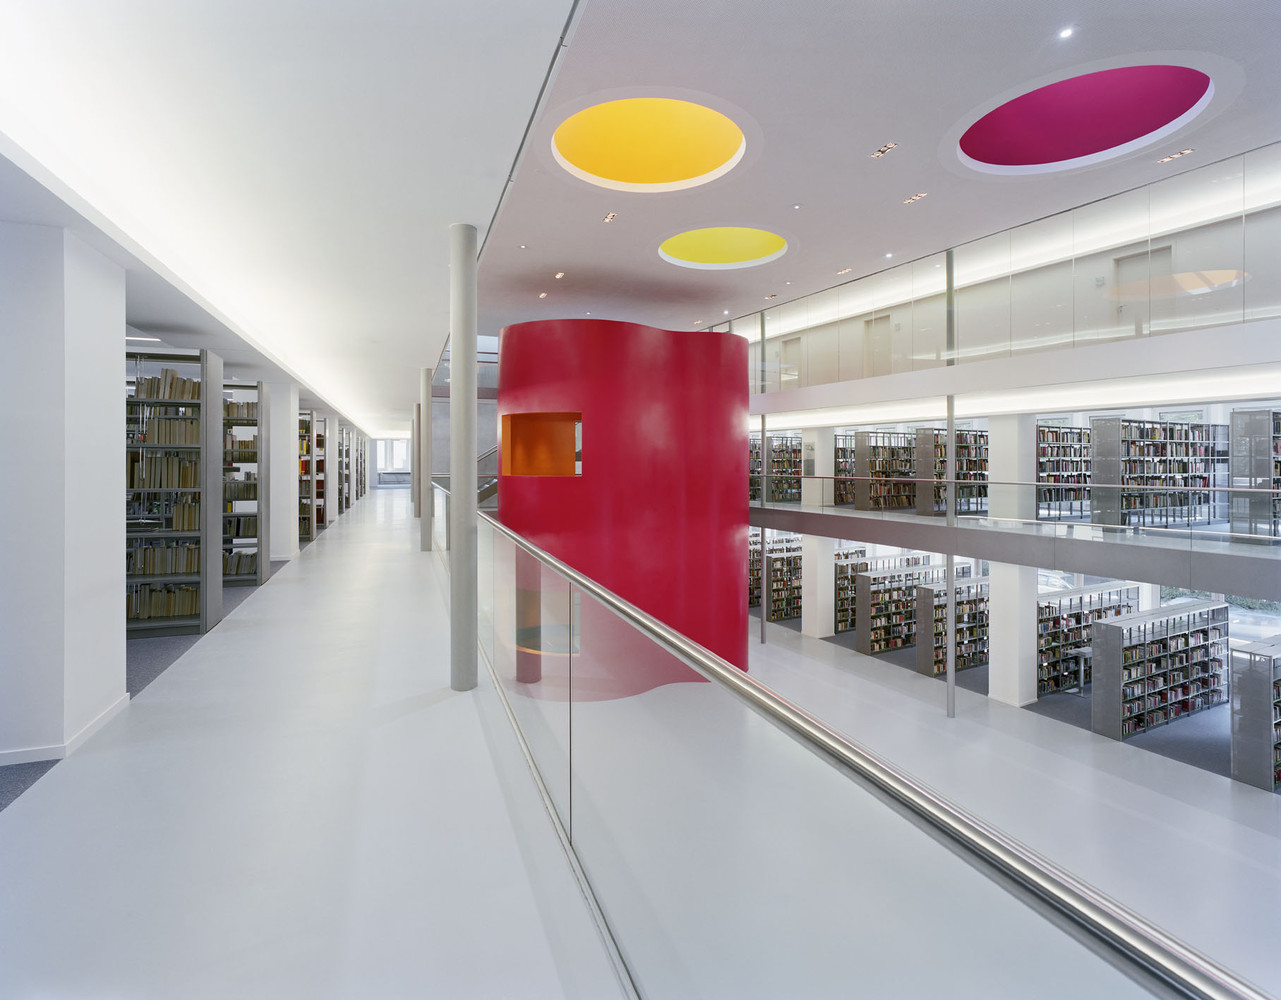 idesign municipallibrary 01